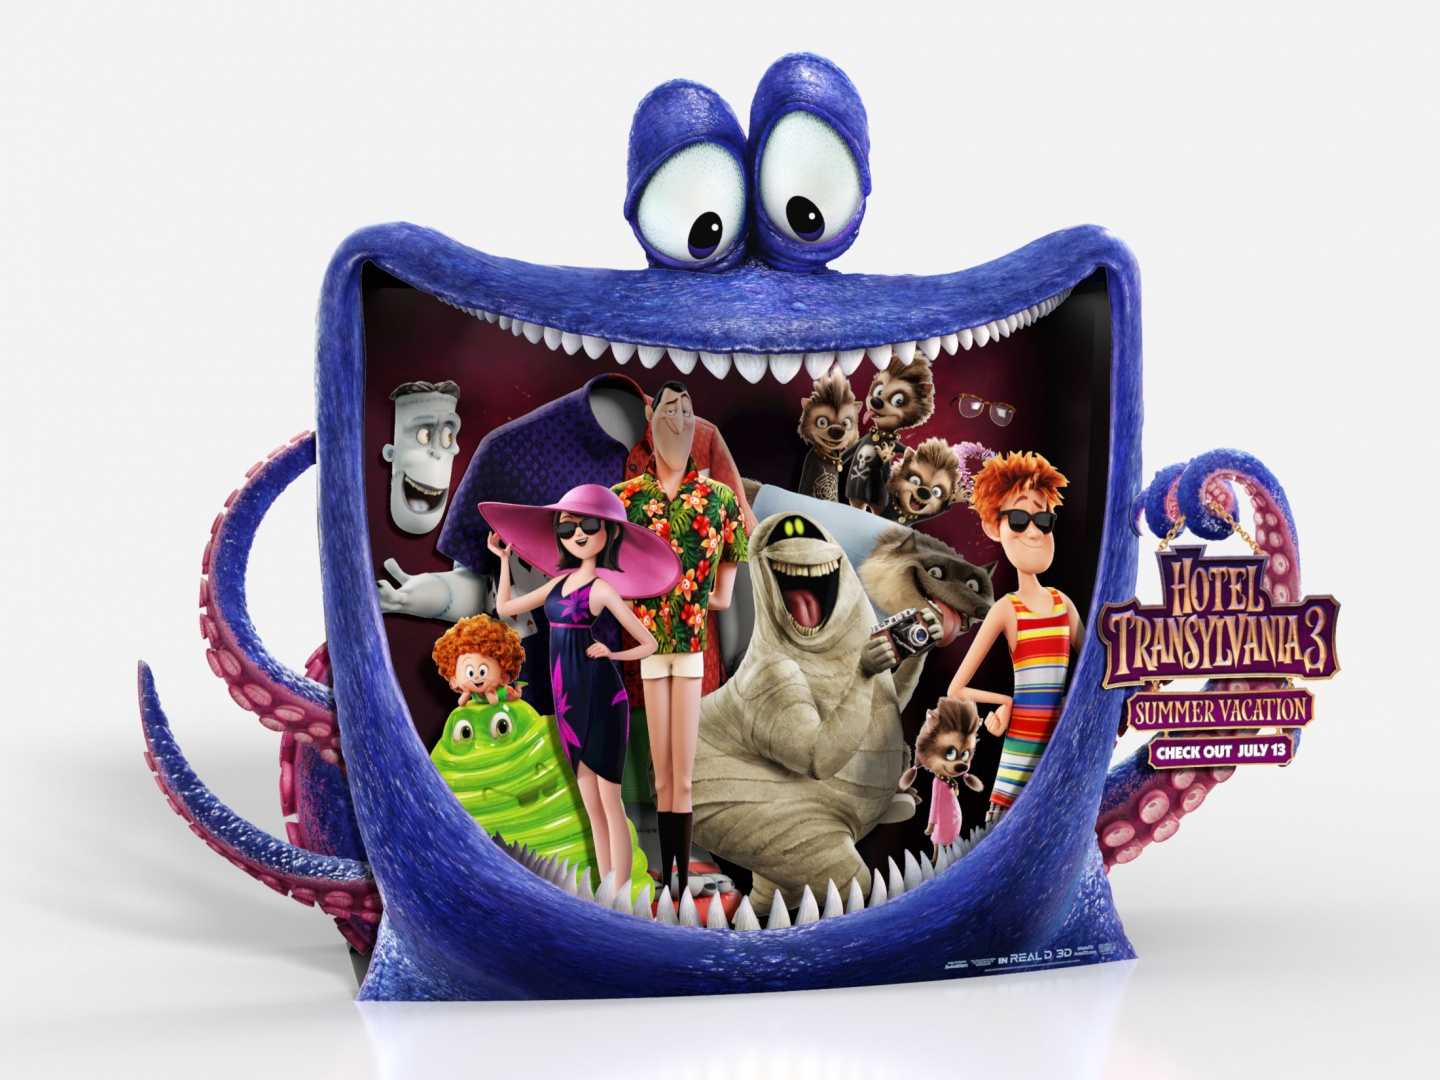 Hotel Transylvania 3: Summer Vacation In-Theatre Standee Thumbnail